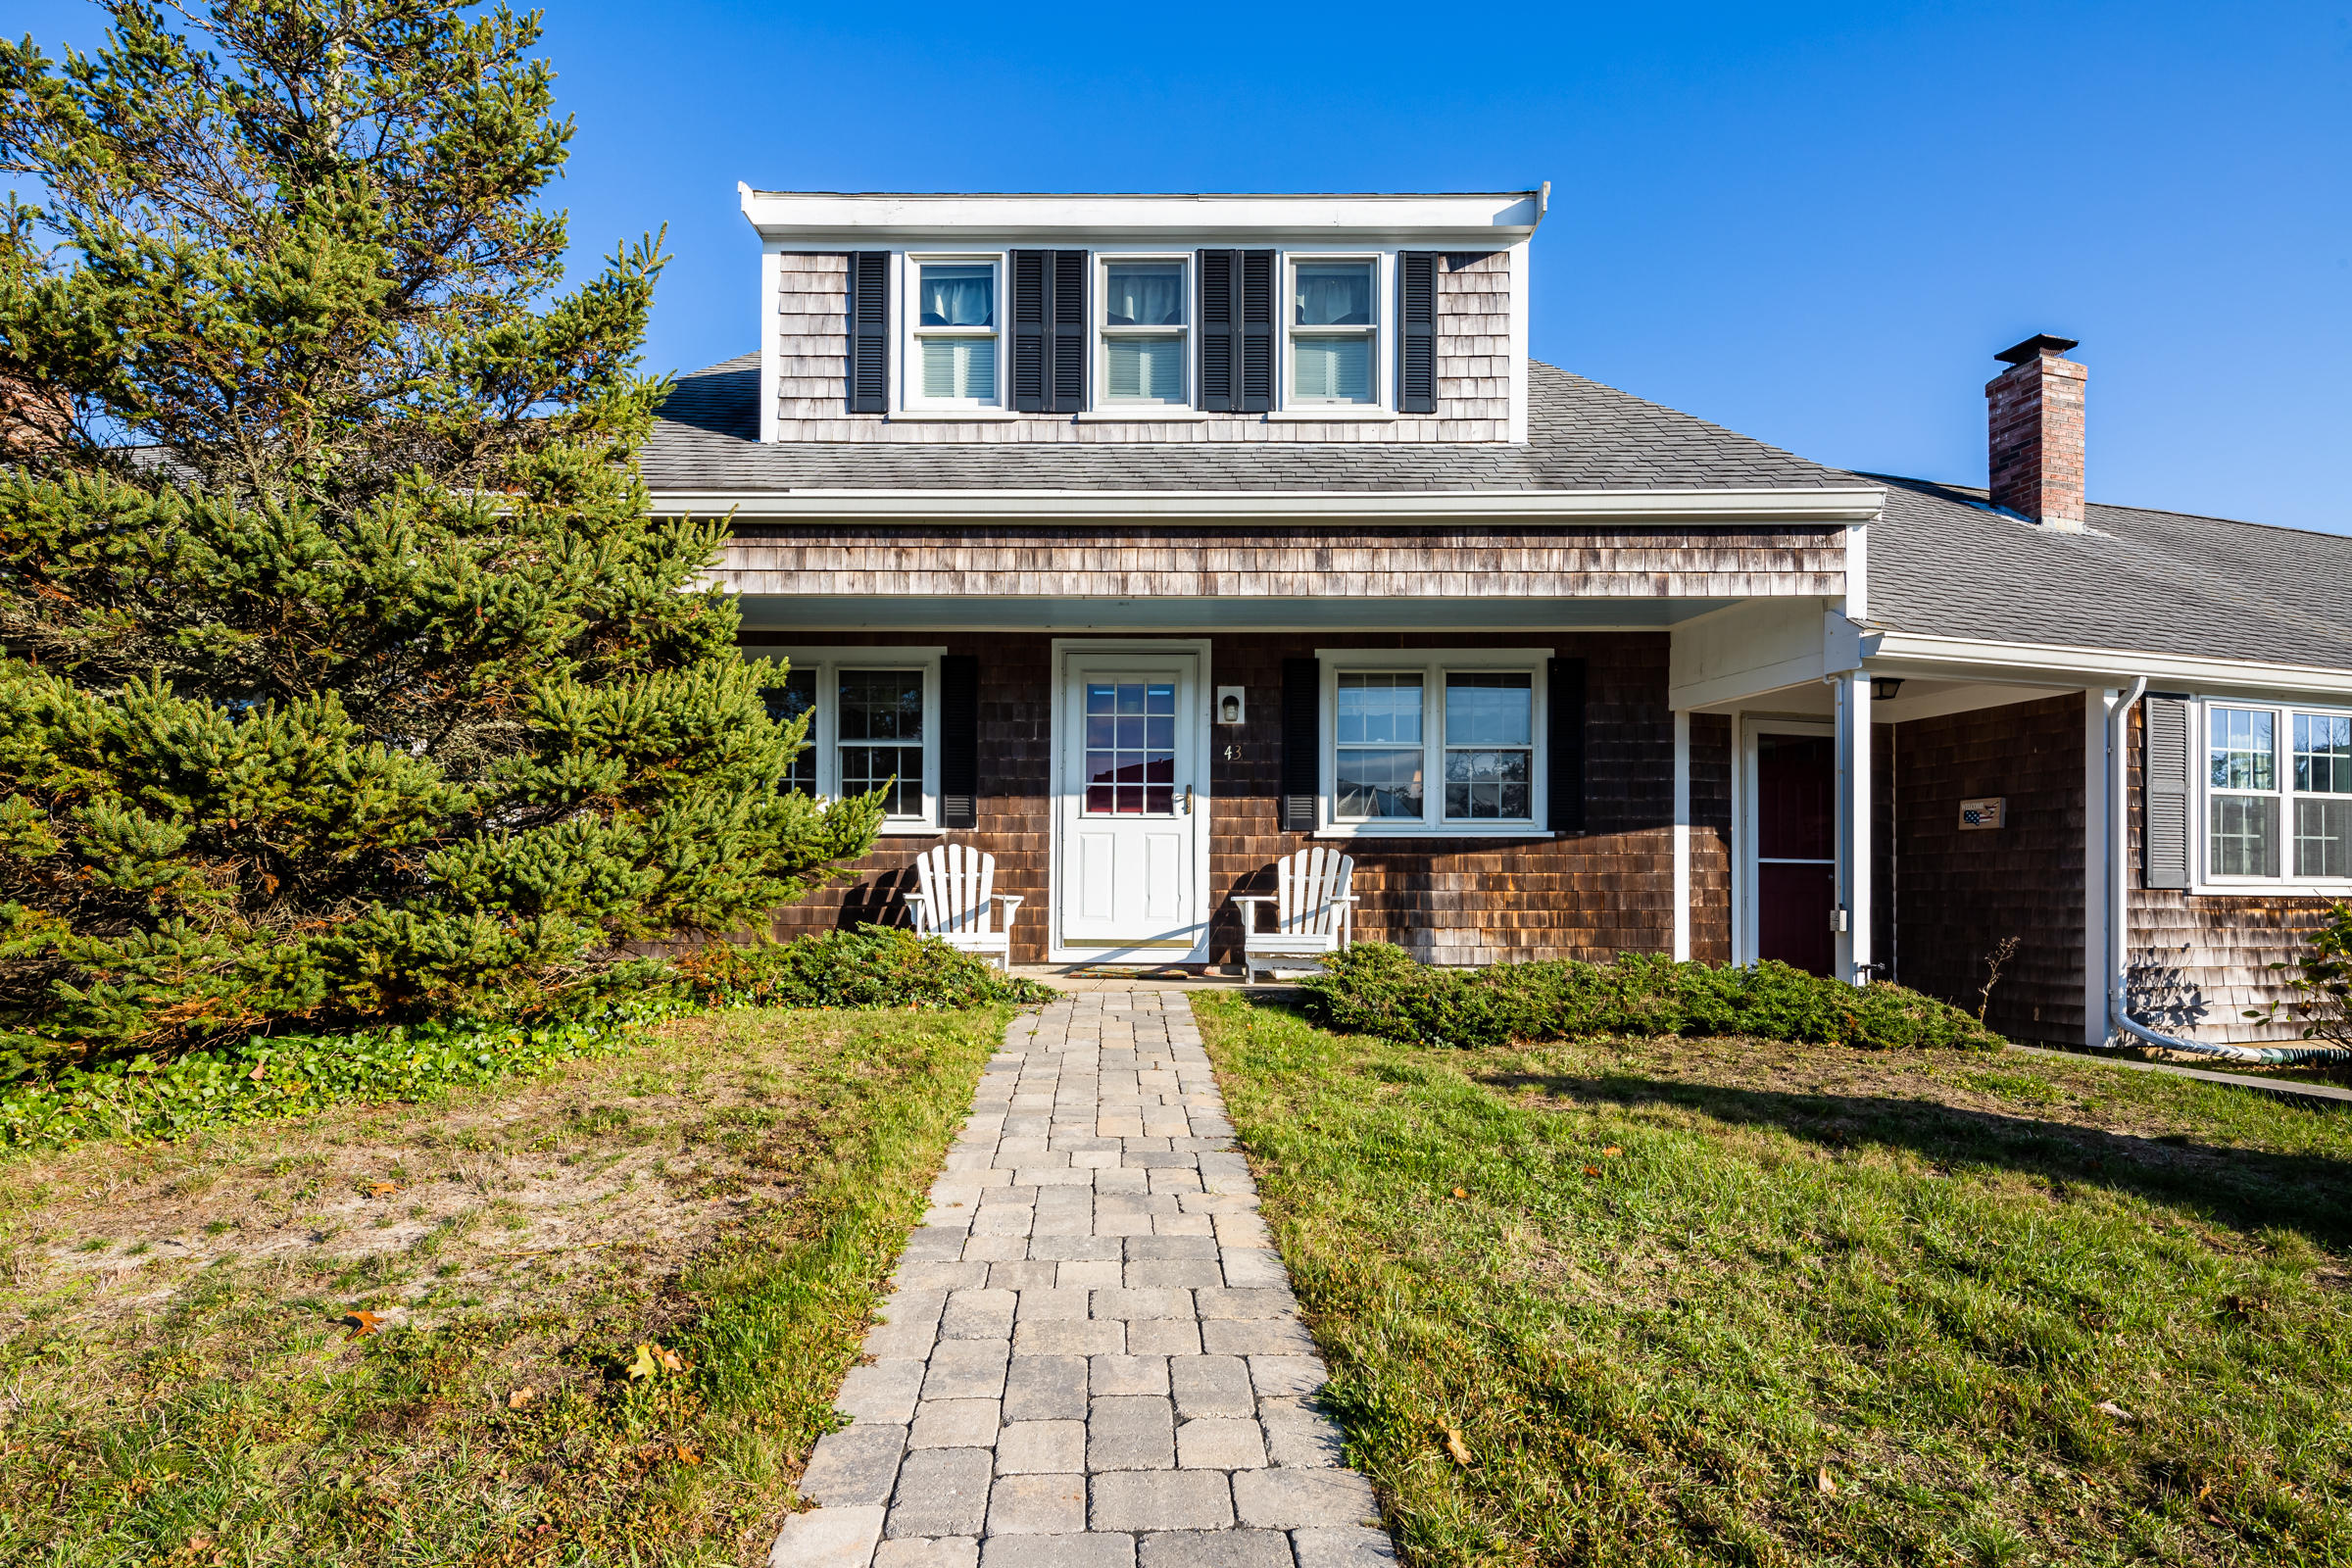 43 Toms Way, Chatham MA, 02633 details